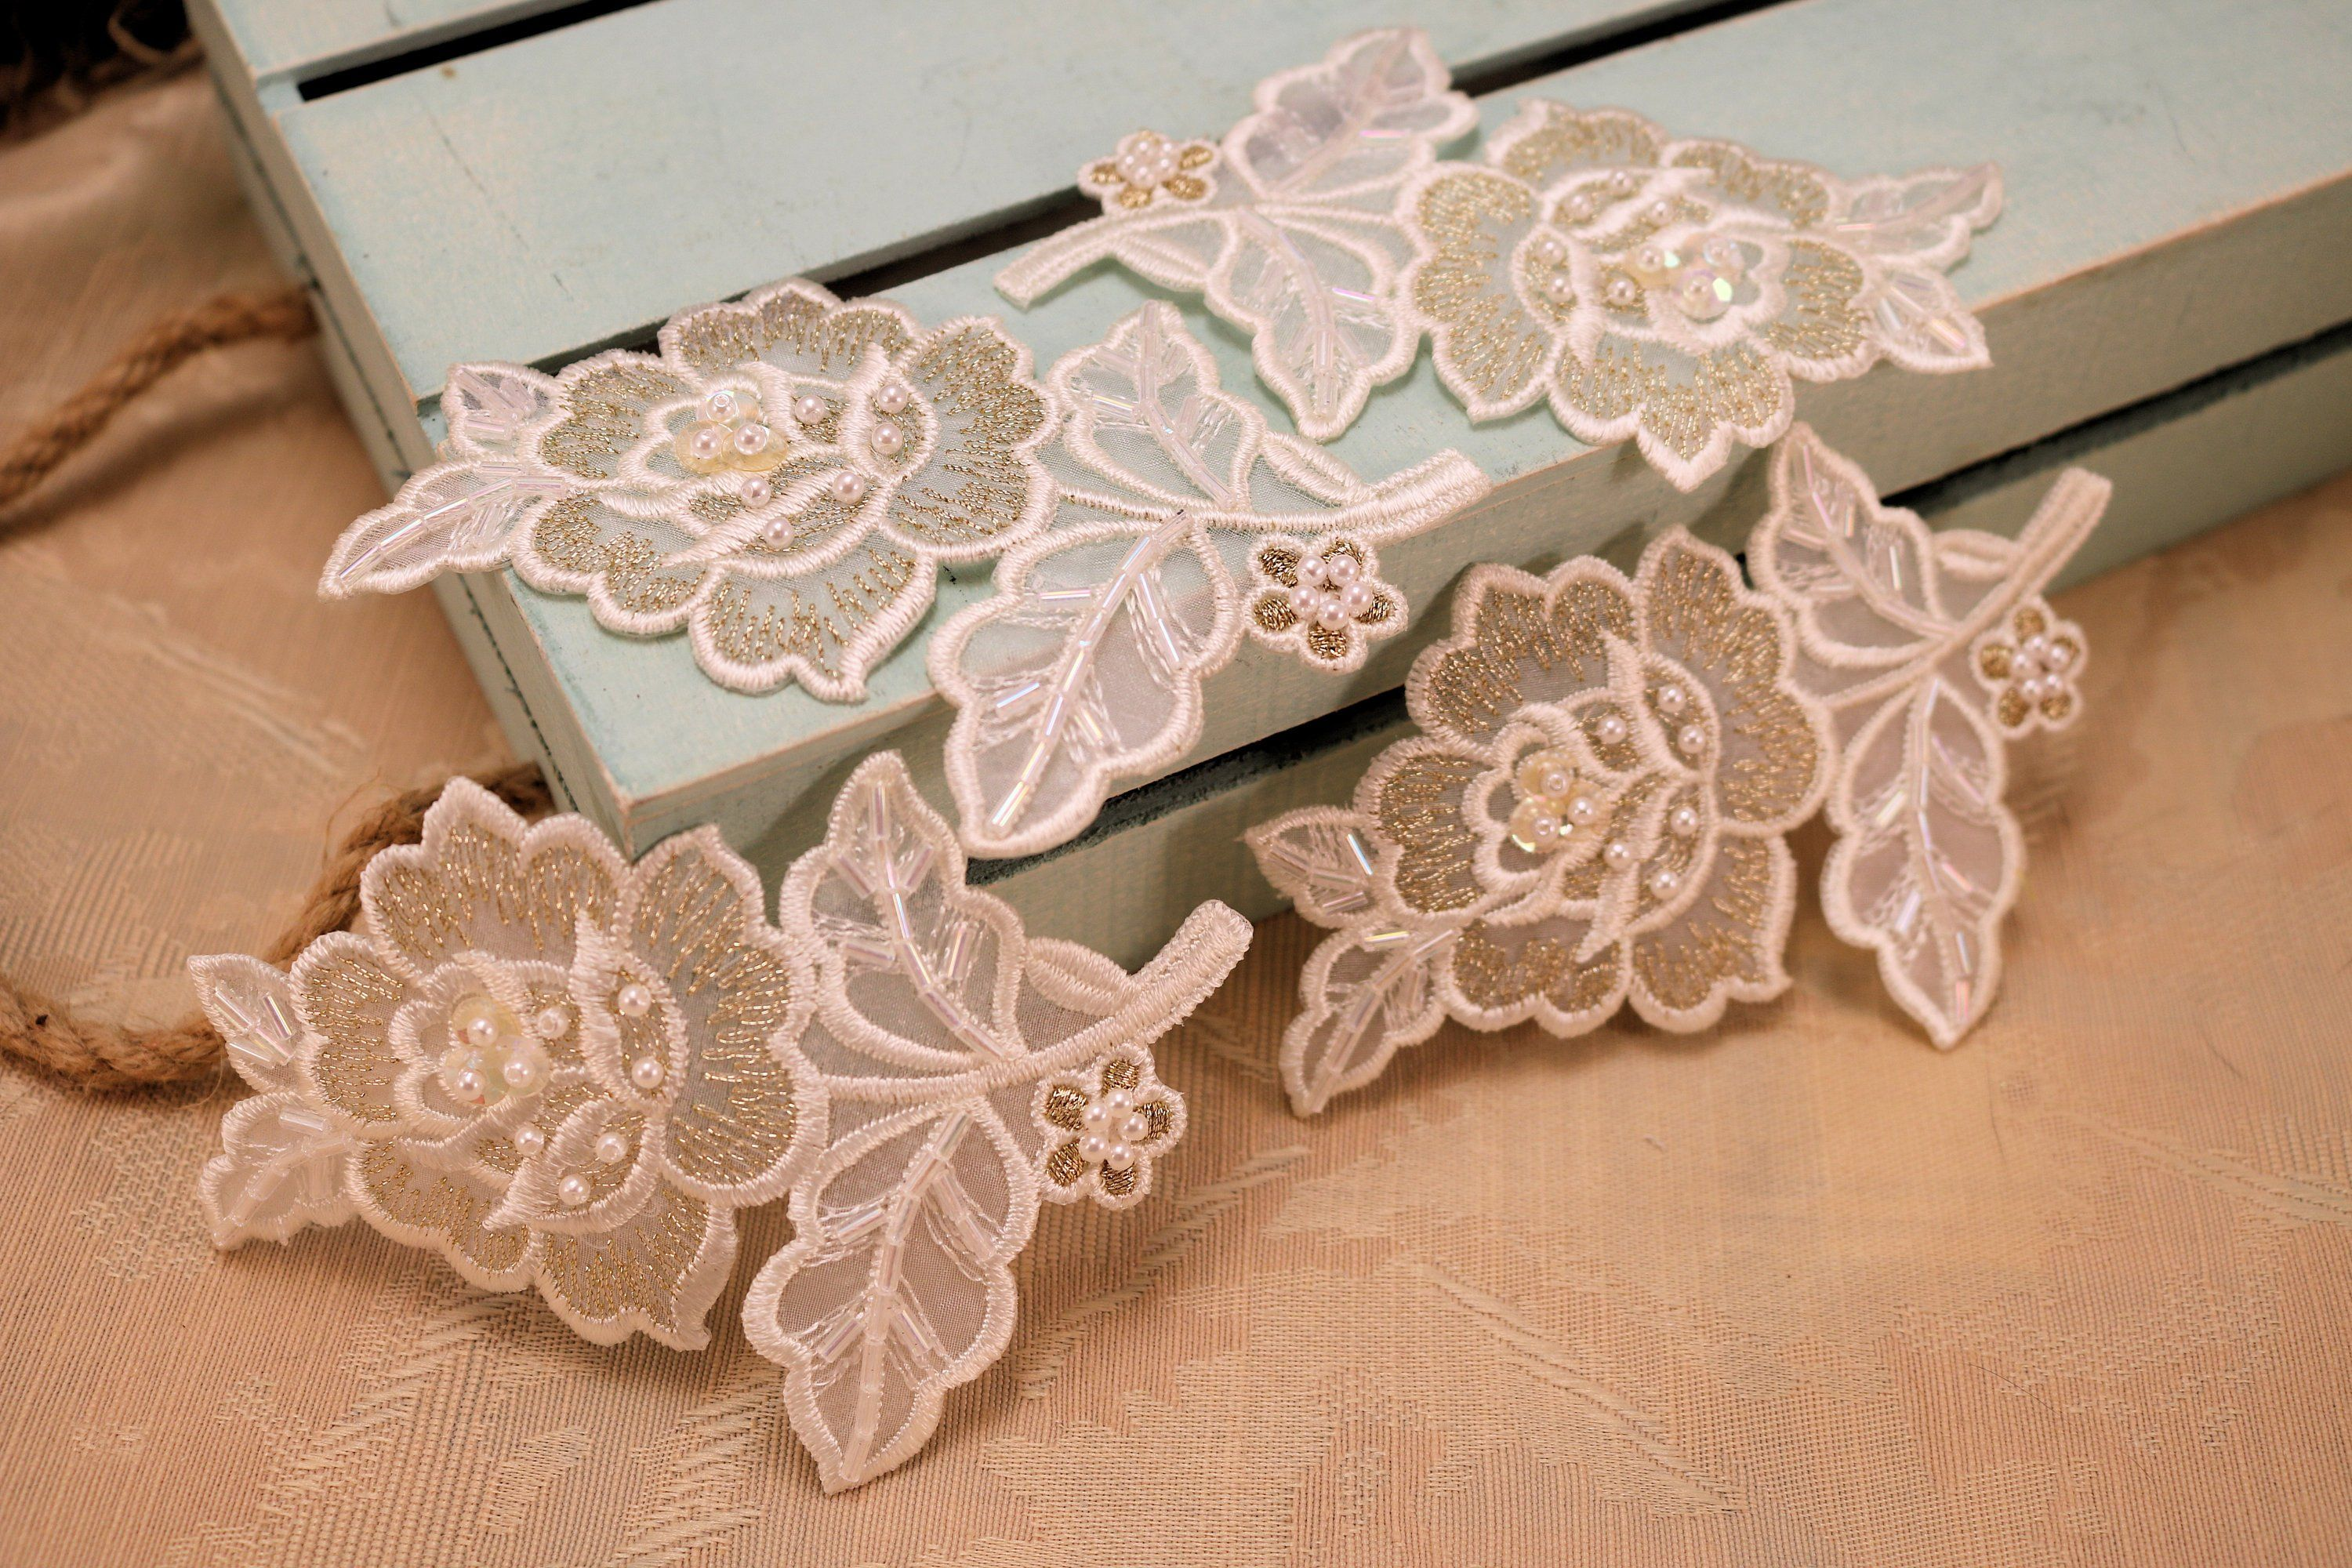 By white fabric with variegated embroidery applique